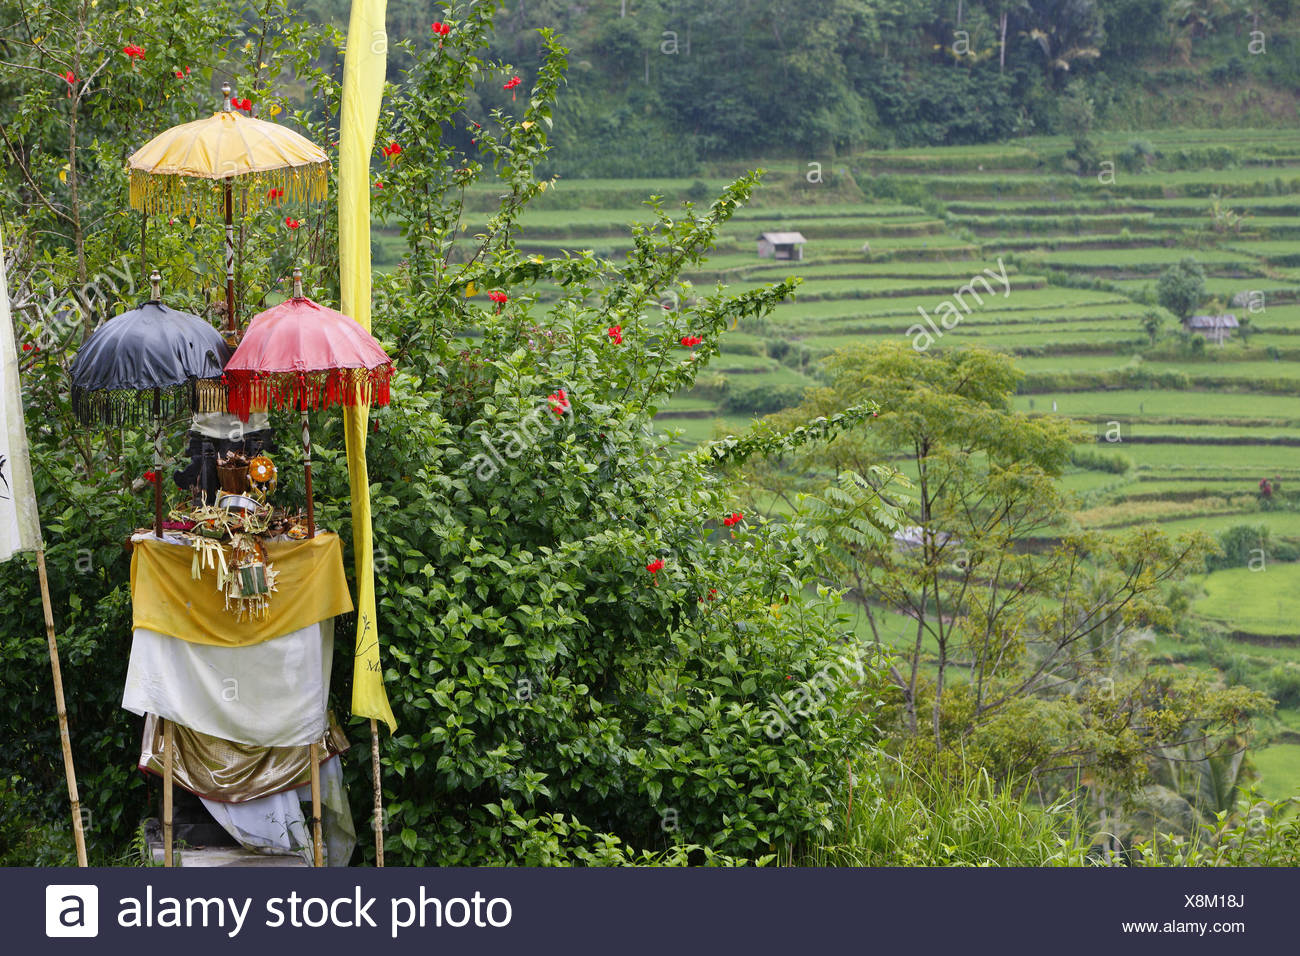 Paddy fields at the Agung volcano, 2567m, Bali, Republic of Indonesia, Asia - Stock Image